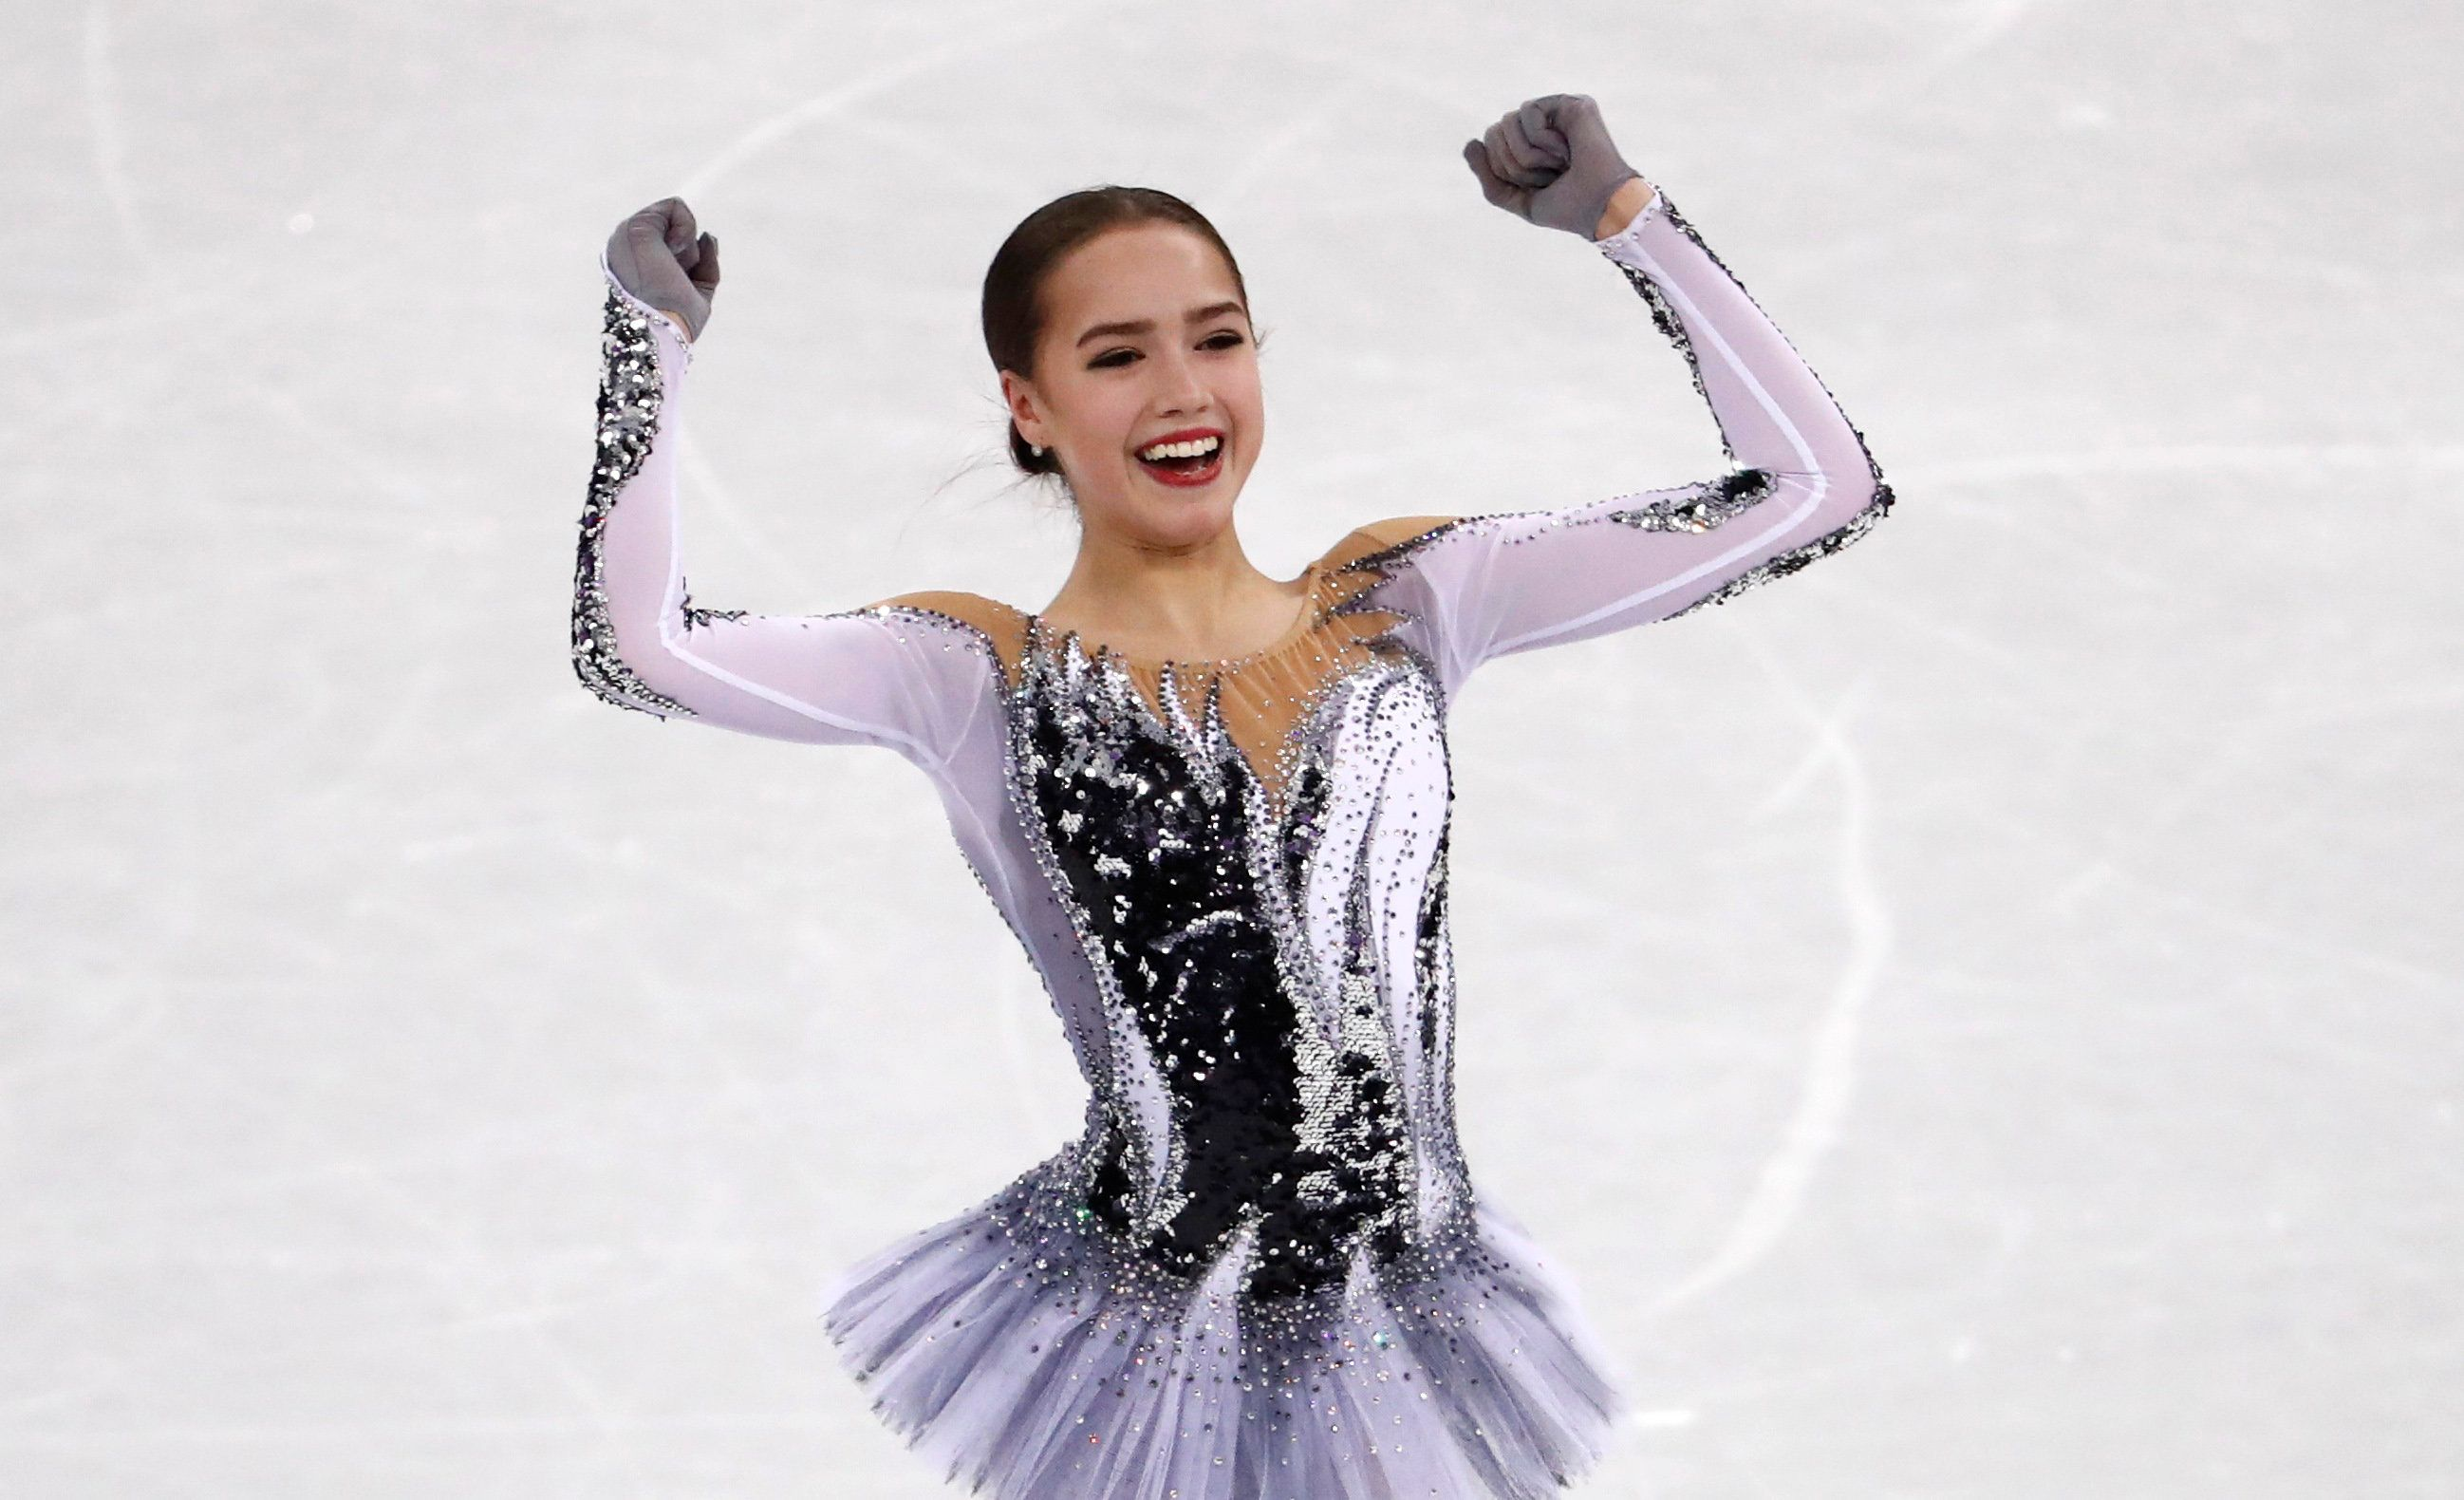 Evgenia Medvedeva told why she was struck by Canada 07/13/2018 27